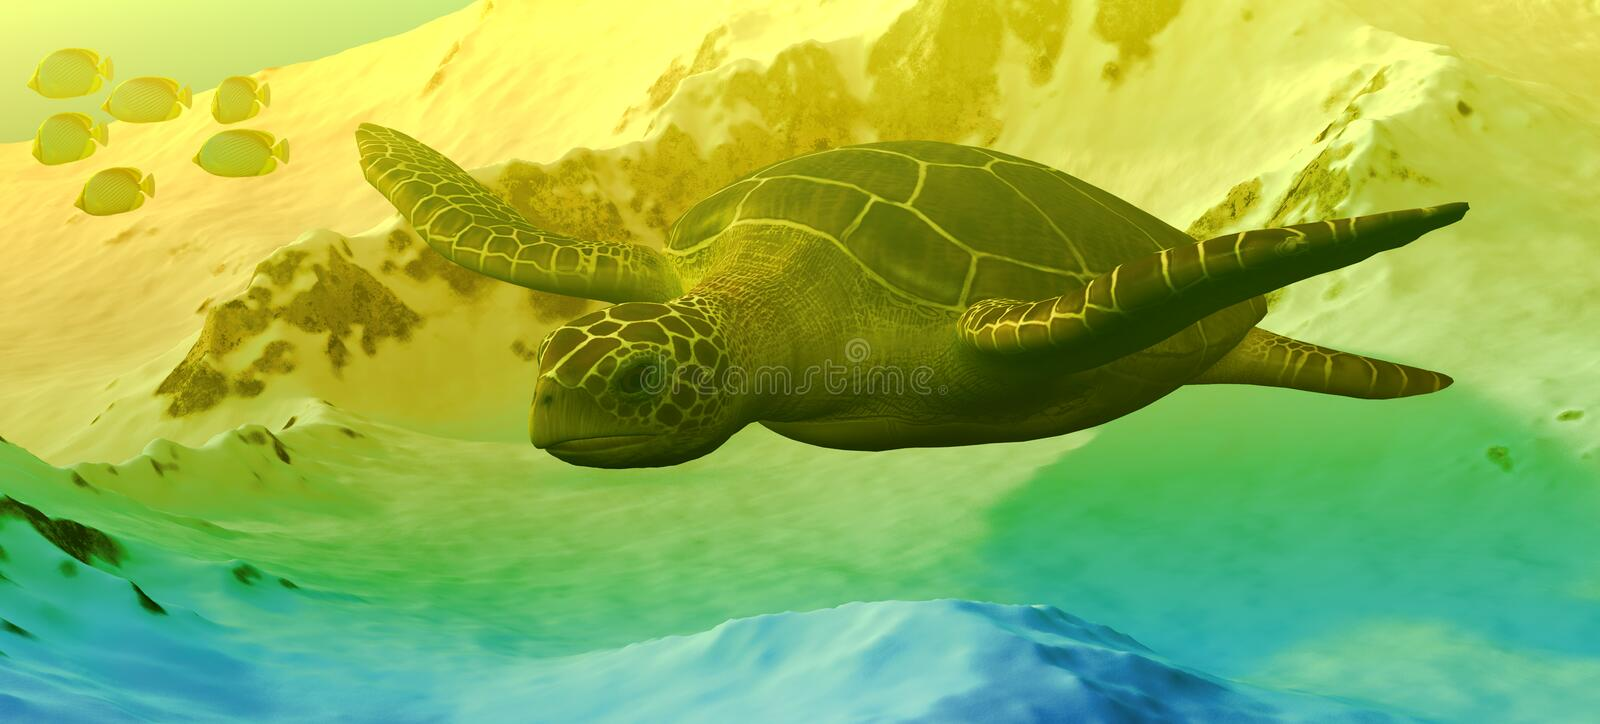 Download Sea Turtle Swimming stock illustration. Image of turtle - 19368533